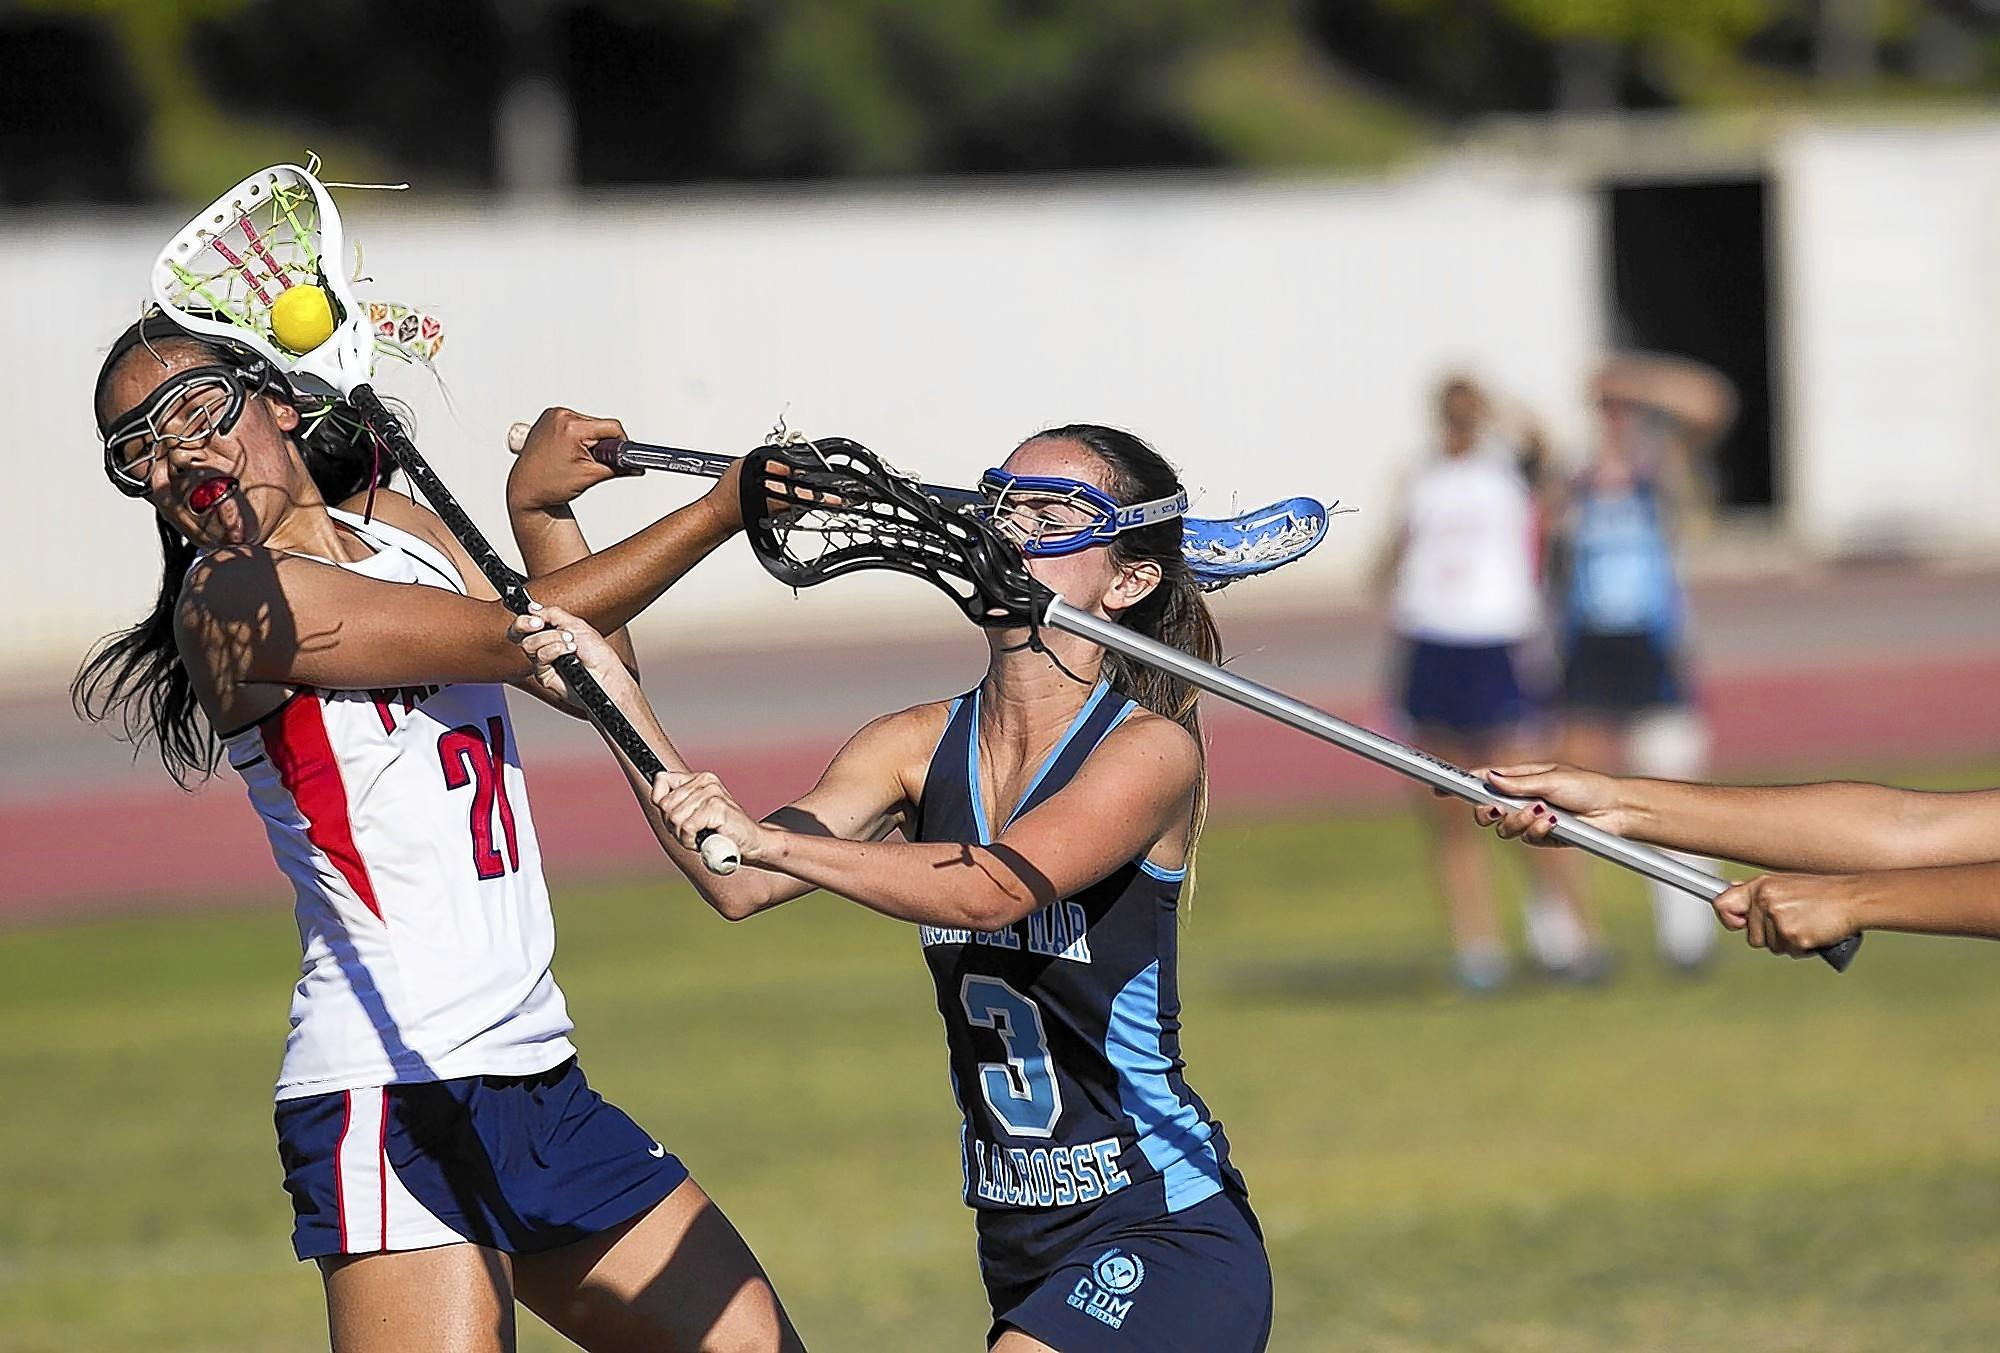 Corona del Mar High's Kacie Kline takes a shot, as Beckman's Luna Tsujimoto attempts to block her during a Pacific Coast League game on Monday.